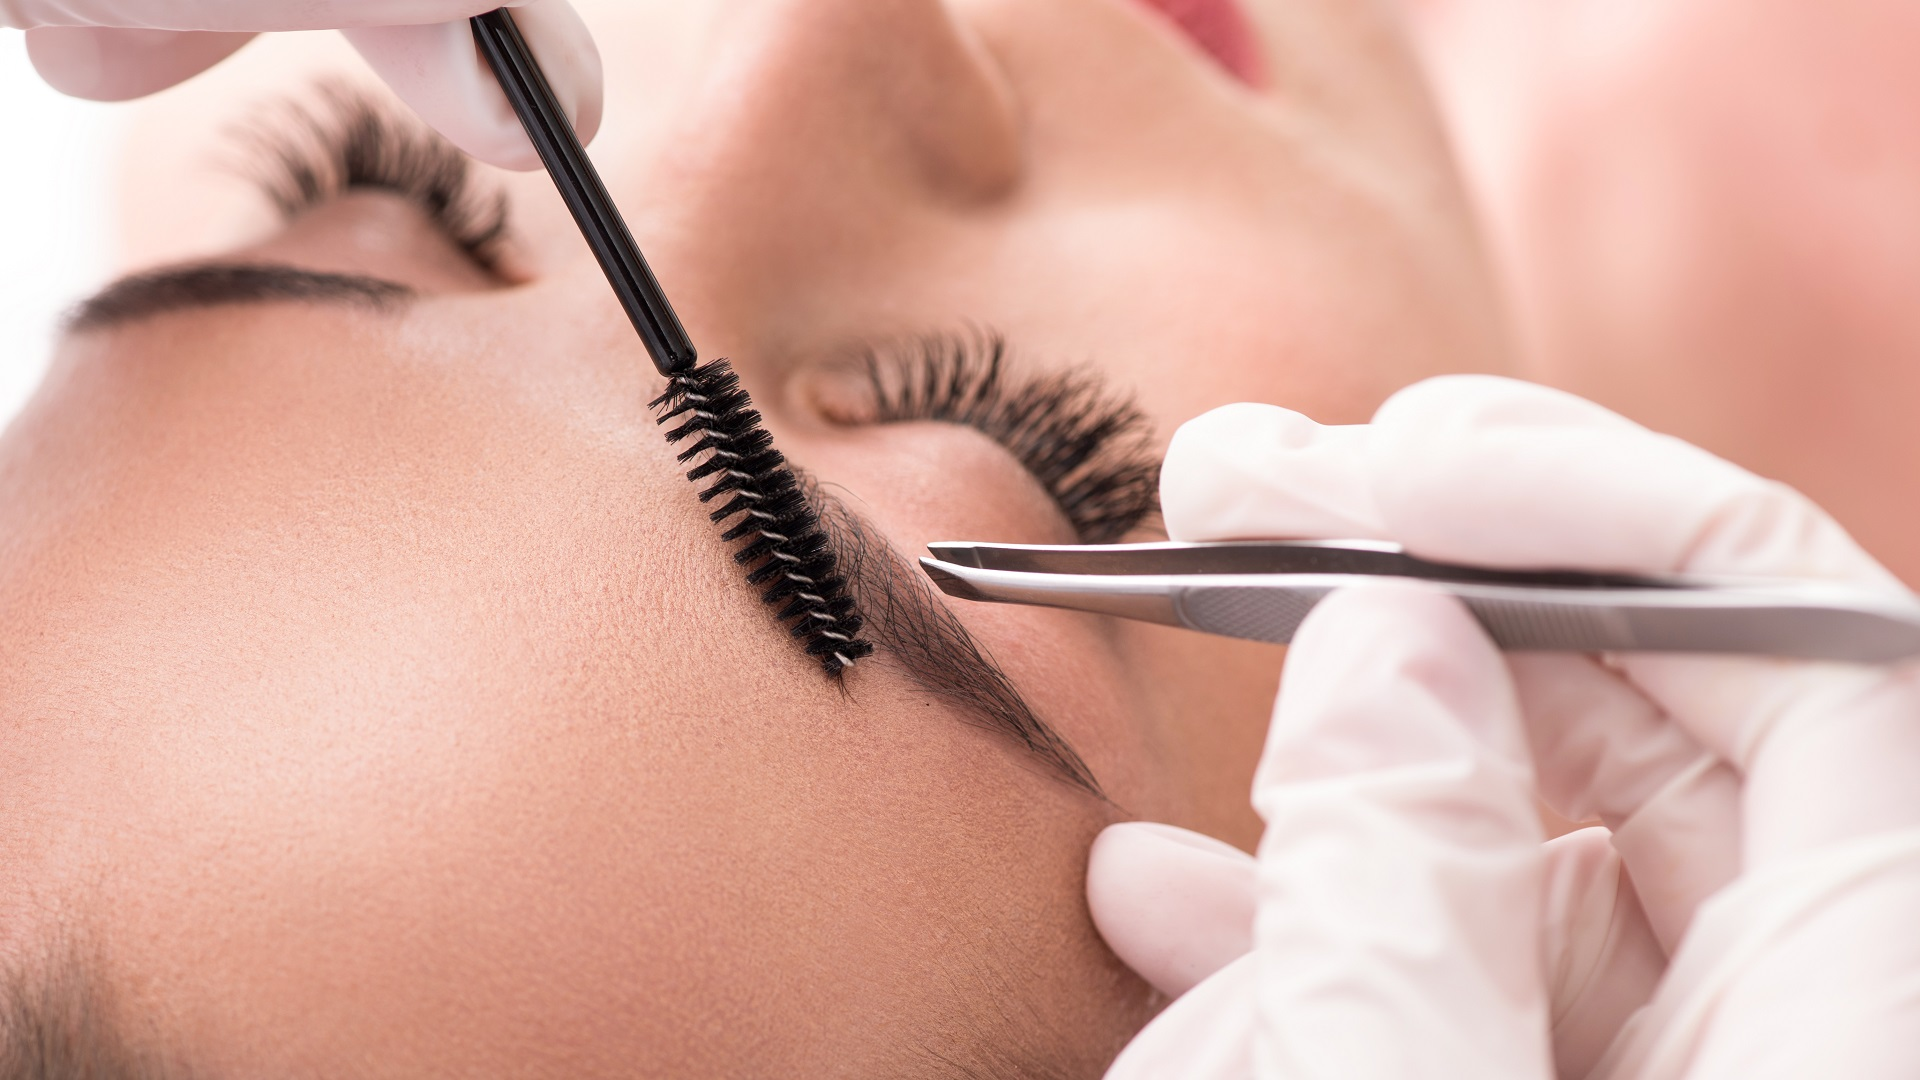 Brow sculpting, brow shaping, brow specialist, brow waxing, waxing salon north brisbane